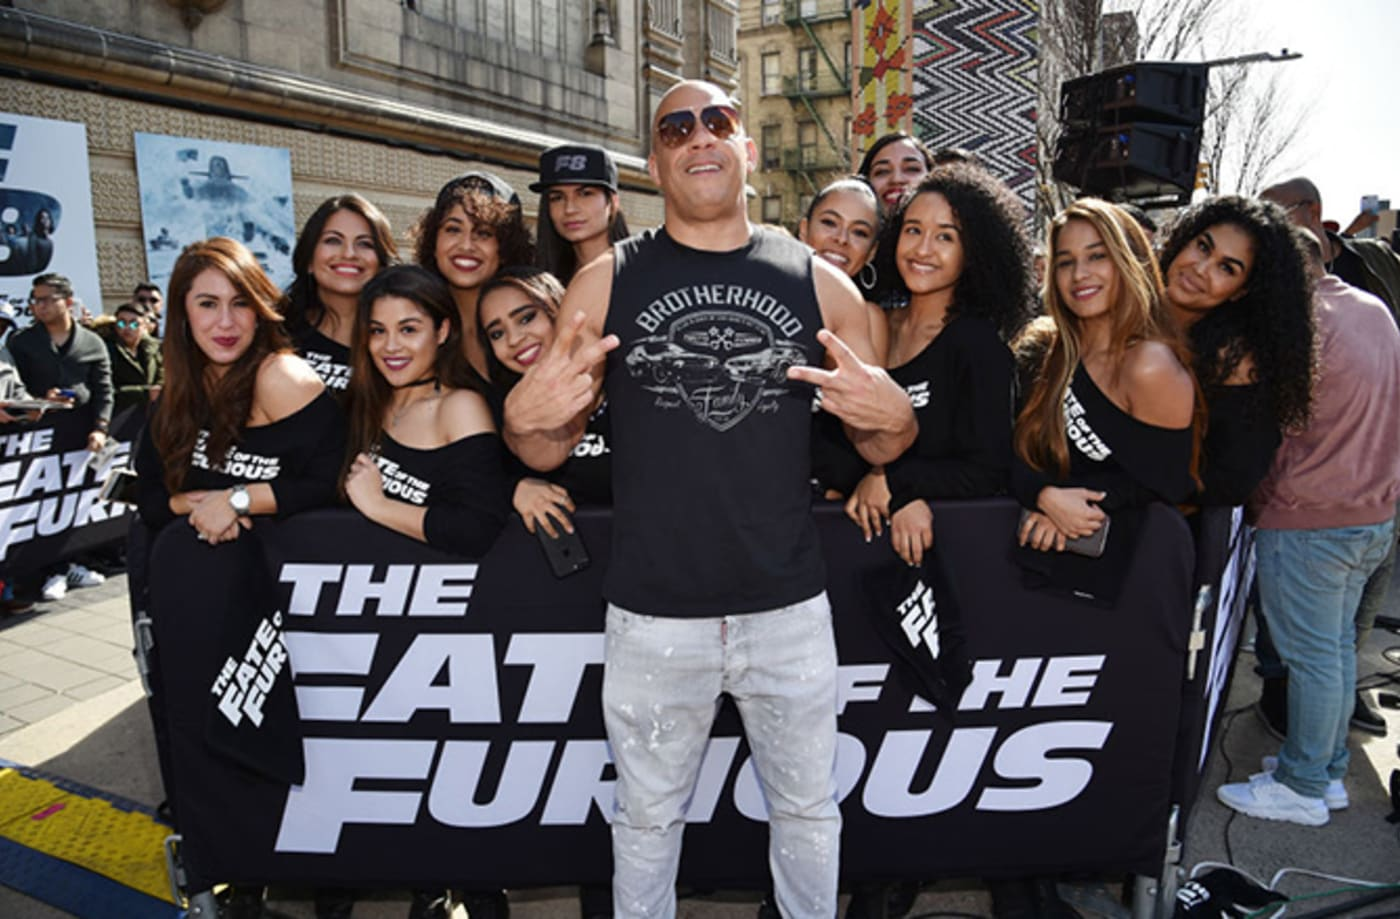 This is a photo of Vin Diesel